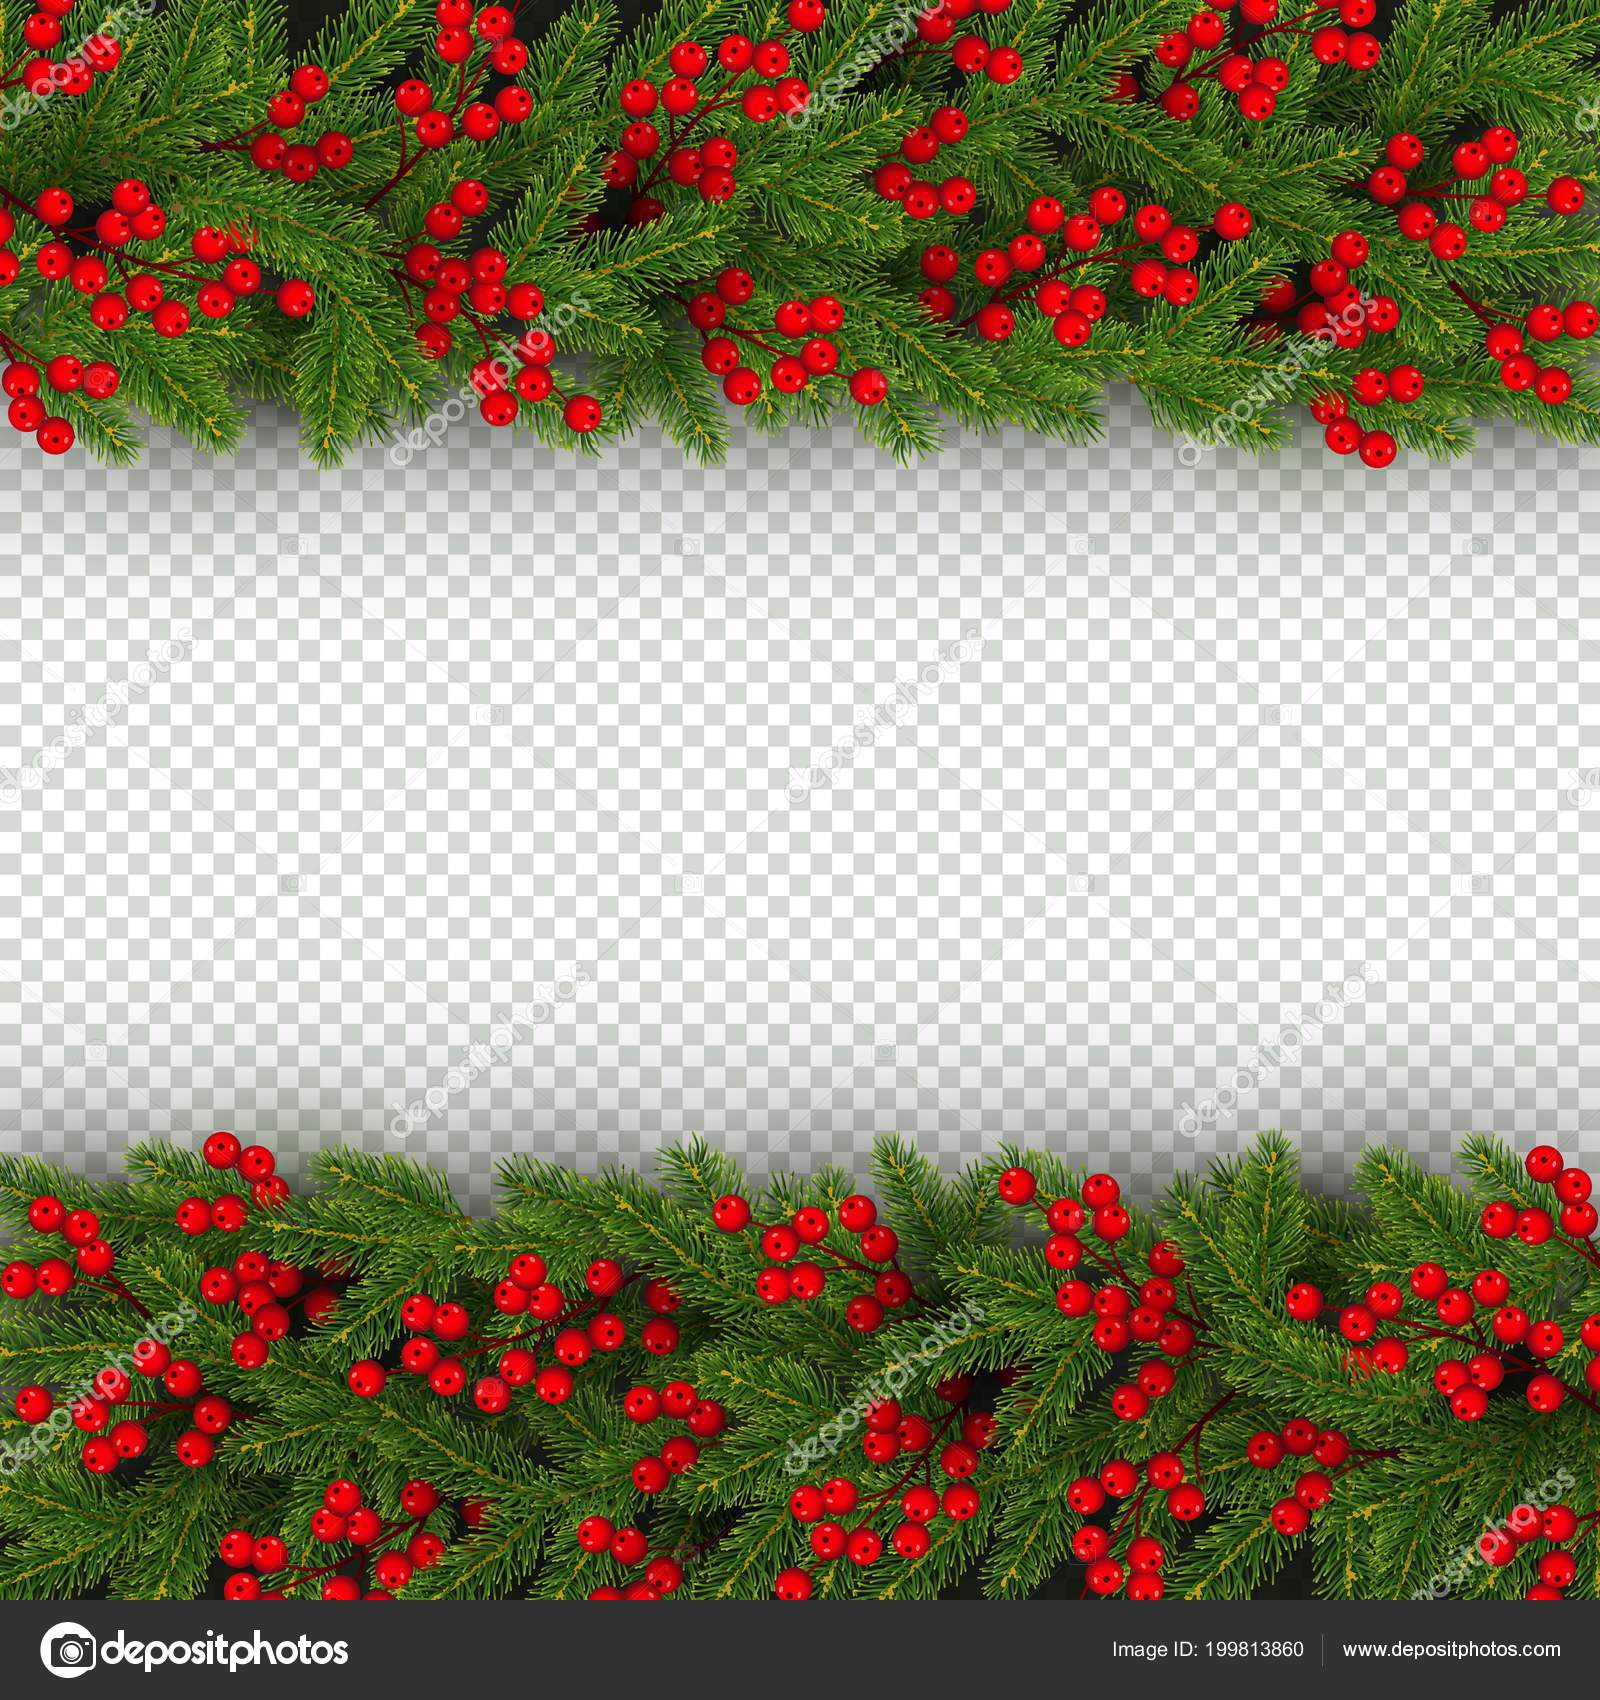 christmas and new year banner template with horizontal border of realistic branches of christmas tree and holly berries element for festive design isolated